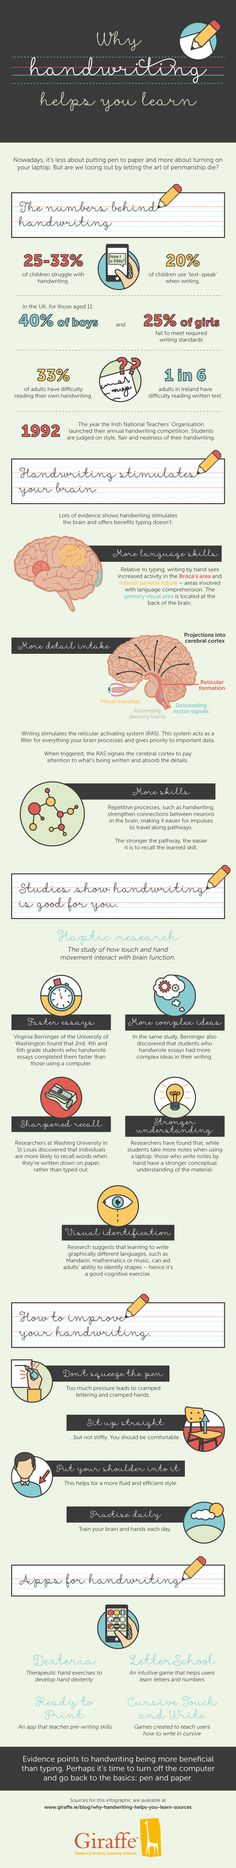 How Handwriting Enhances Learning a few of the benefits that come with learning and practicing hadwriting.